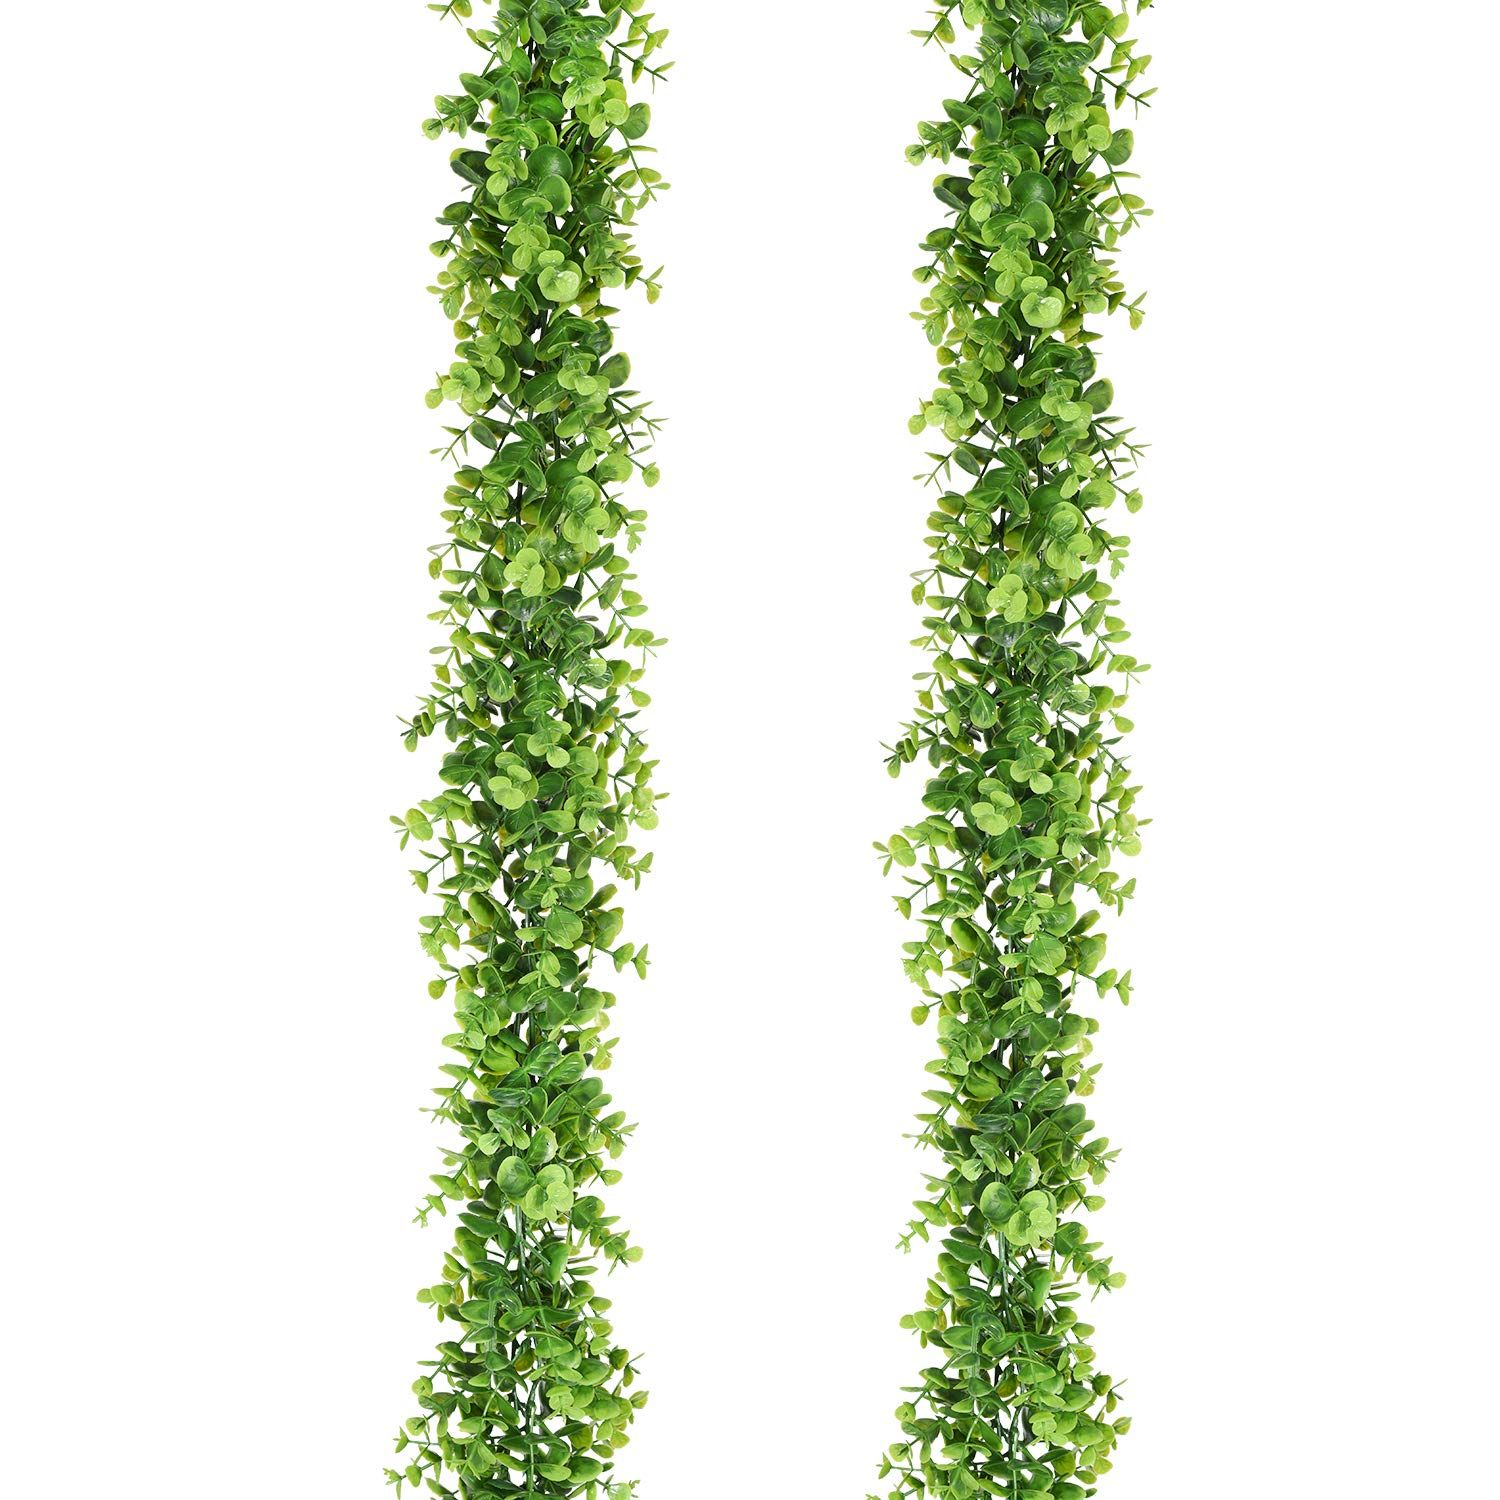 Faux Eucalyptus Garland Plant, 2 Pack Artificial V